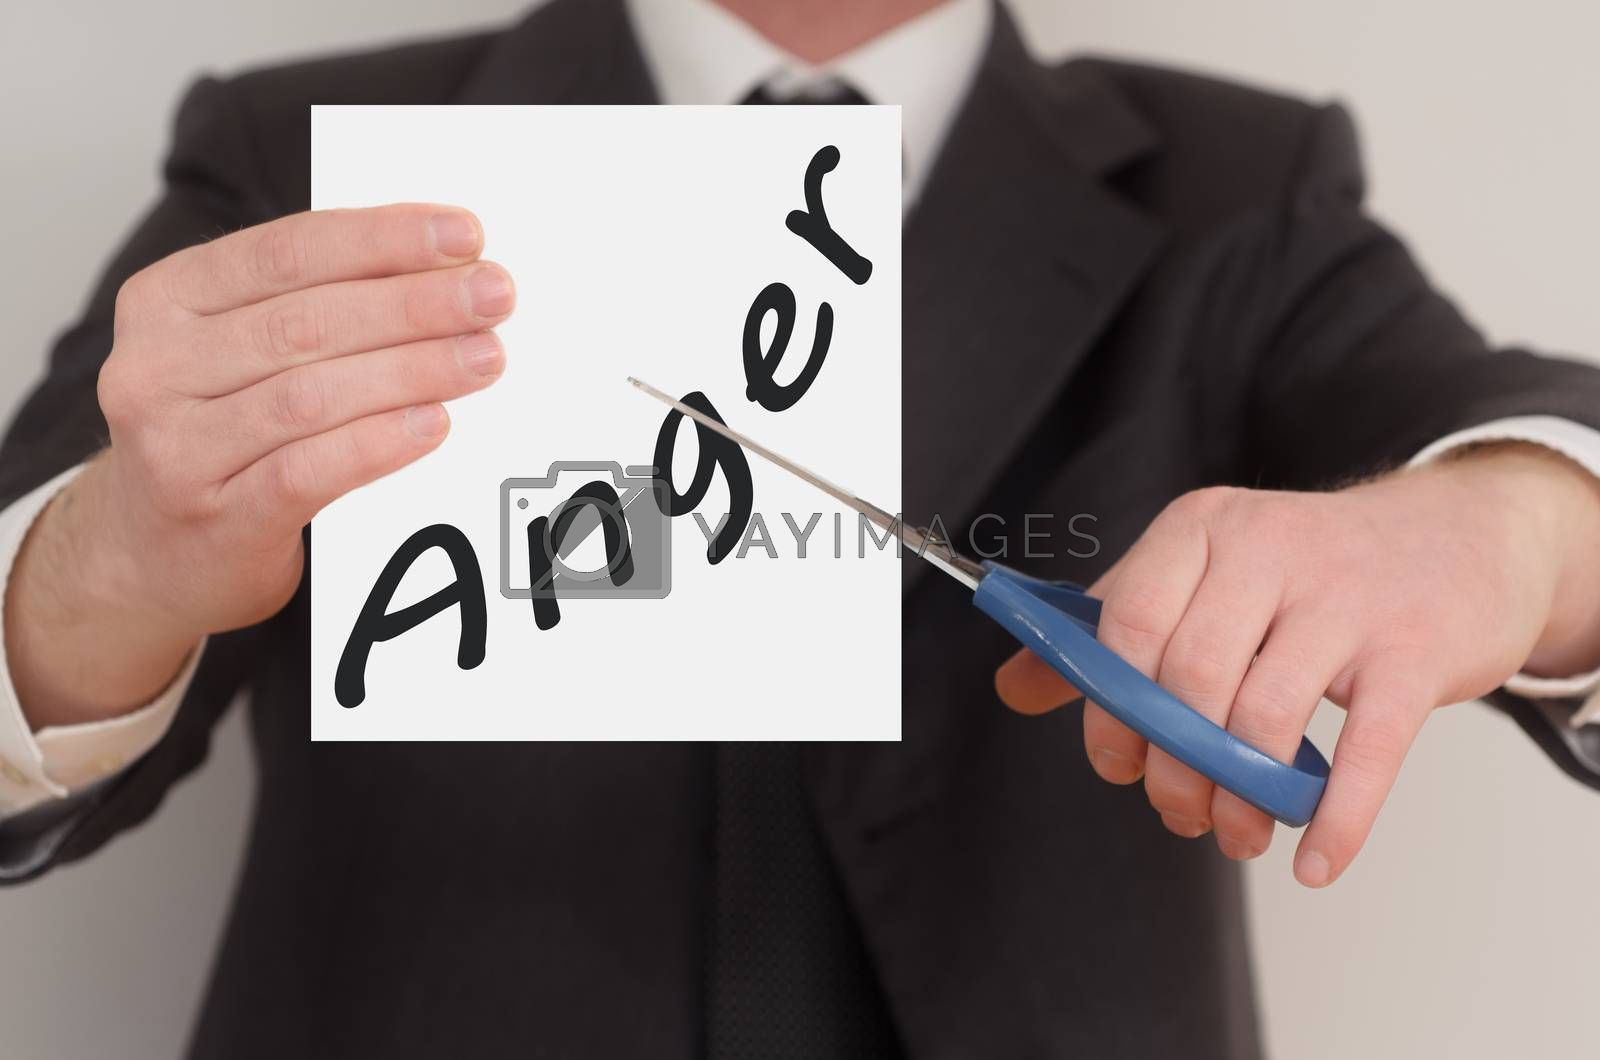 Anger, man in suit cutting text on paper with scissors